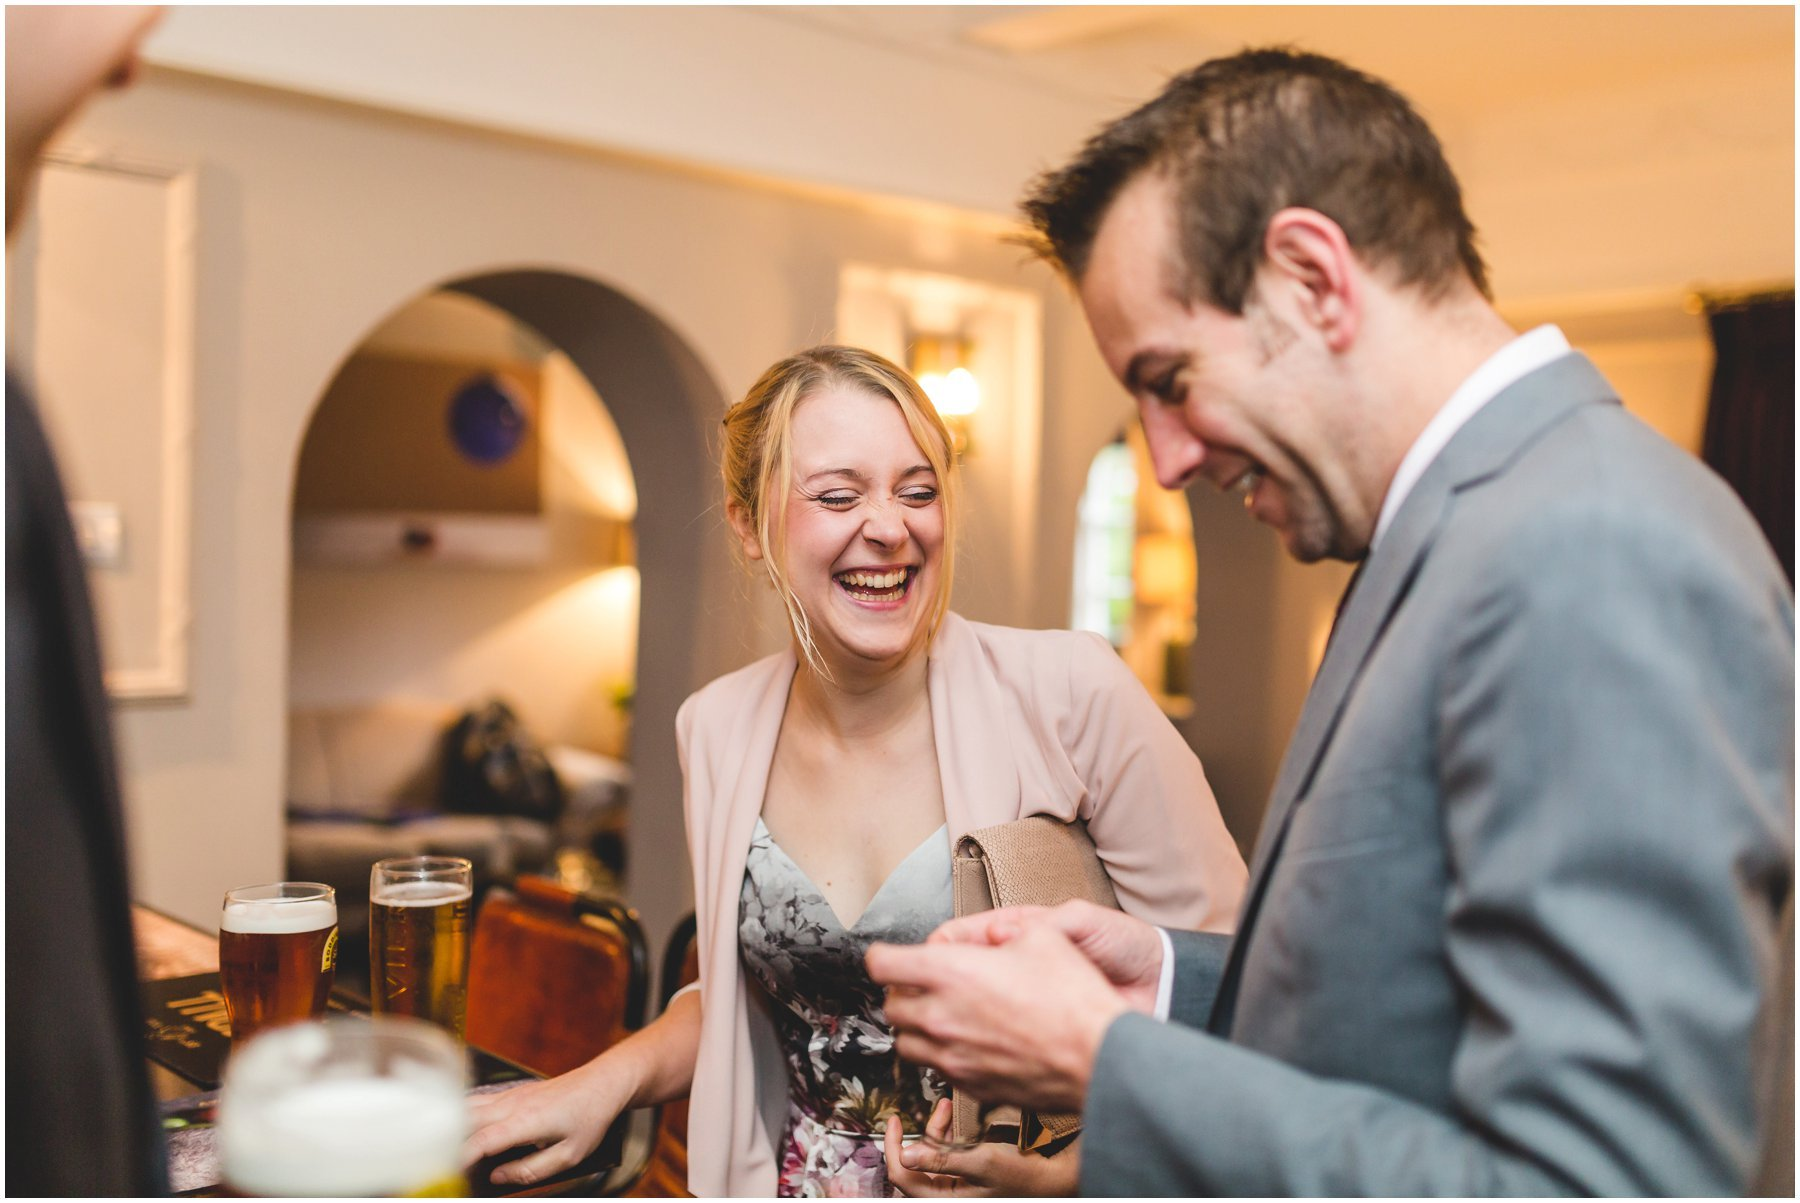 THE NORFOLK MEAD HOTEL WEDDING - DAVID AND SAMANTHA - NORWICH WEDDING PHOTOGRAPHER 10